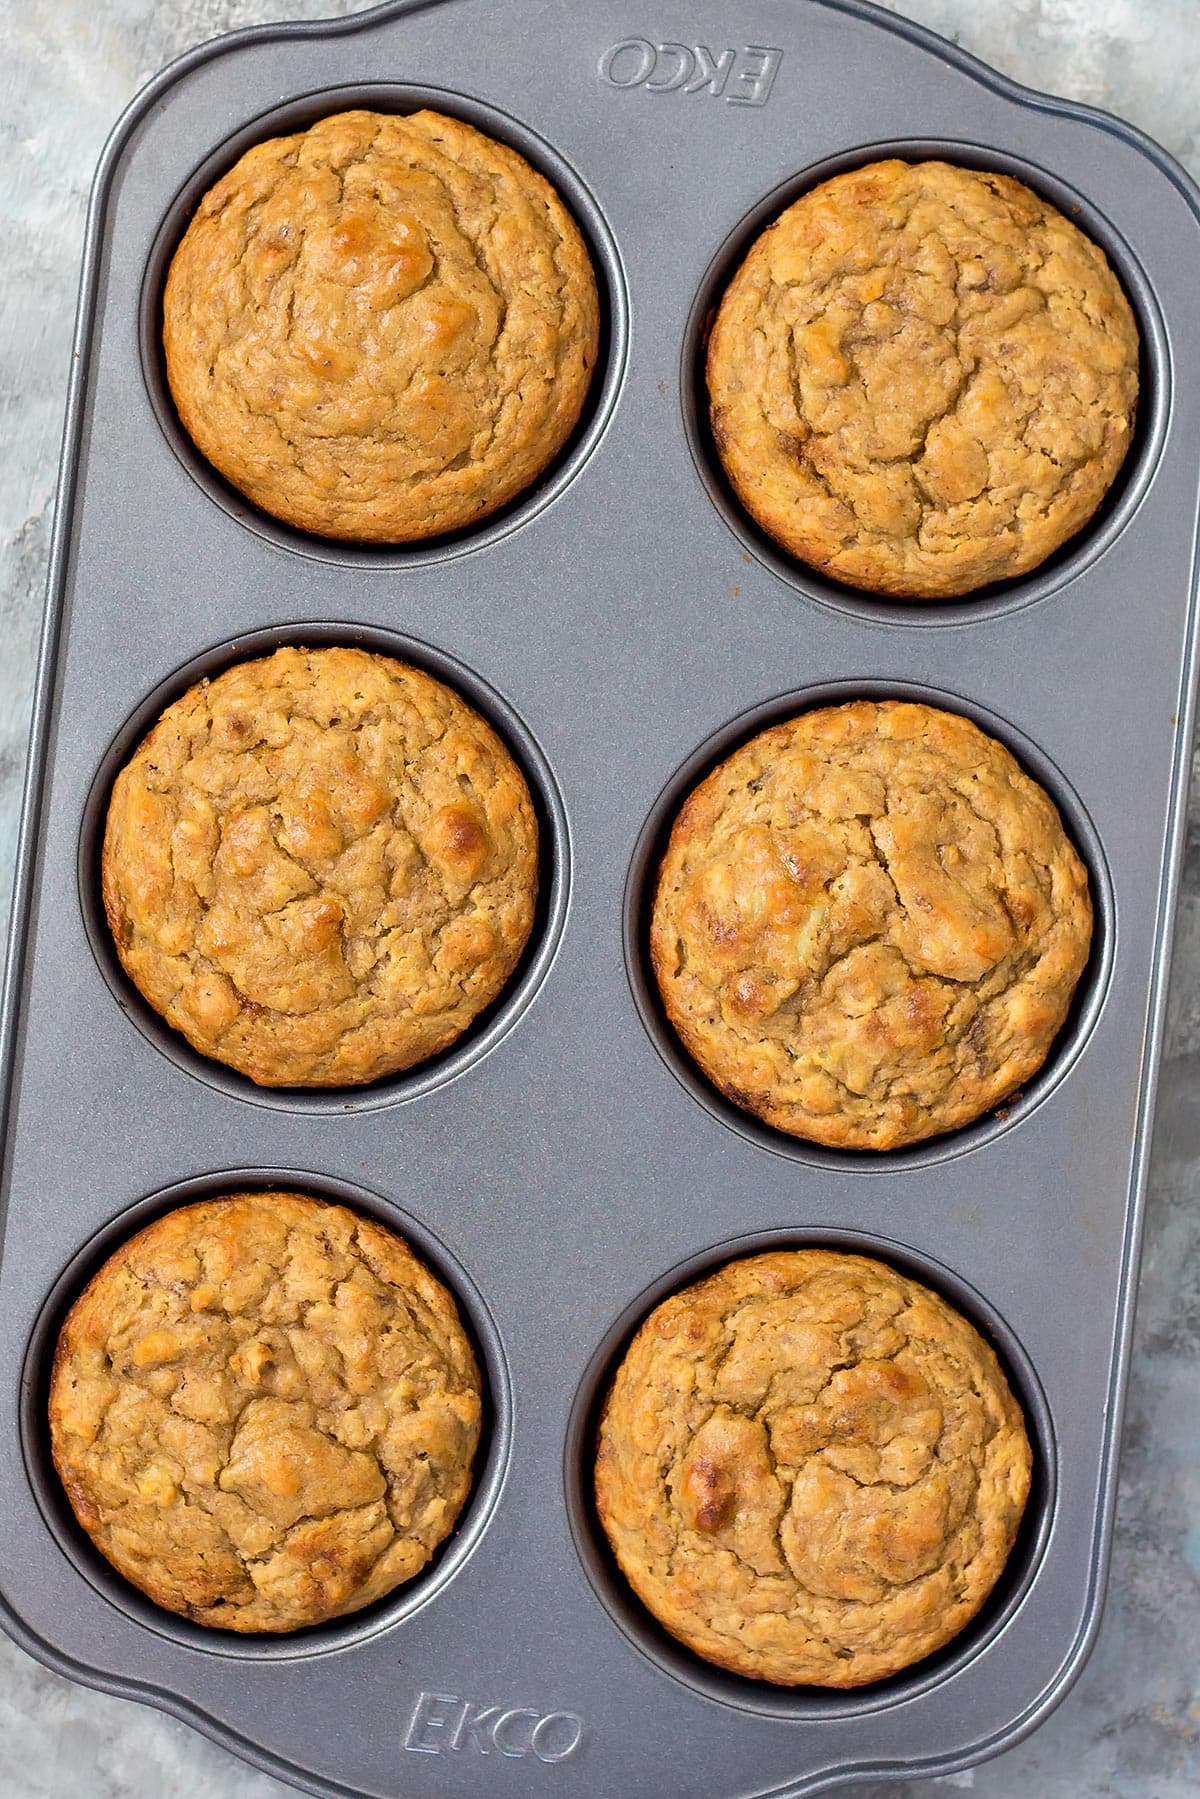 Baked Peanut Butter Banana Muffins in baking pan